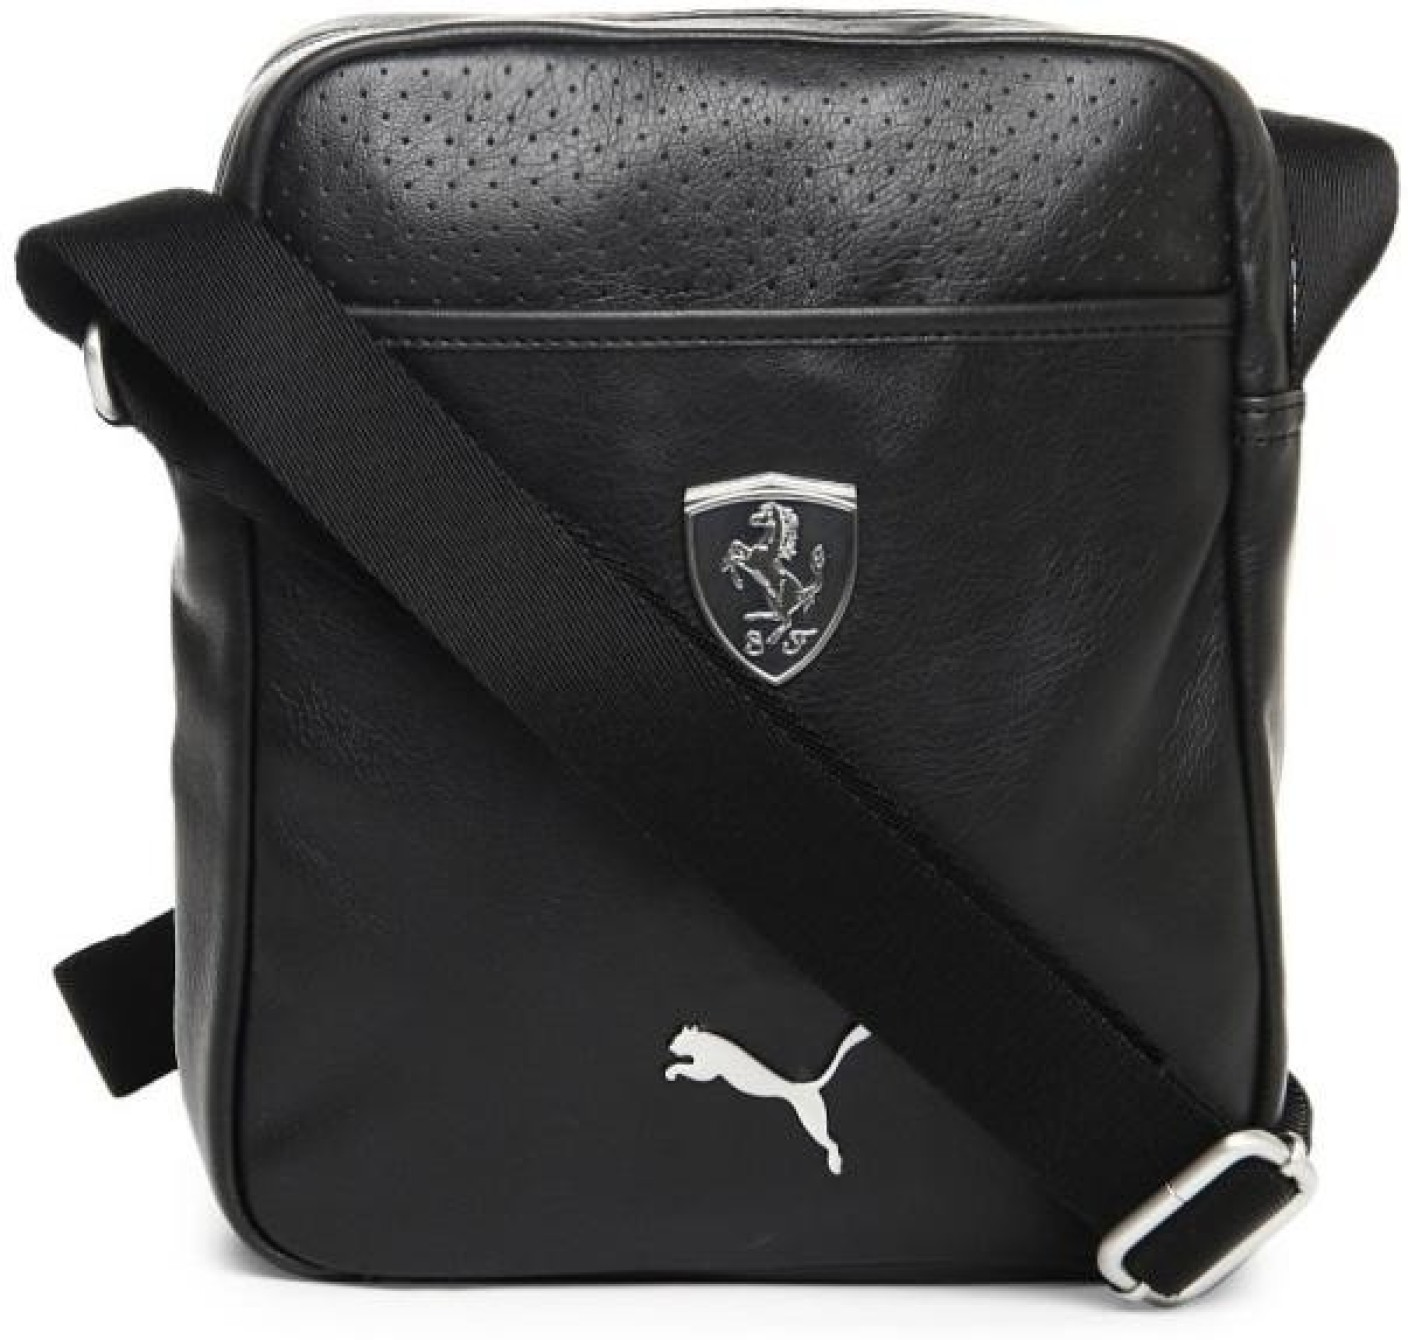 Gym Bag Flipkart: Puma Men & Women Casual Black PU Sling Bag Black